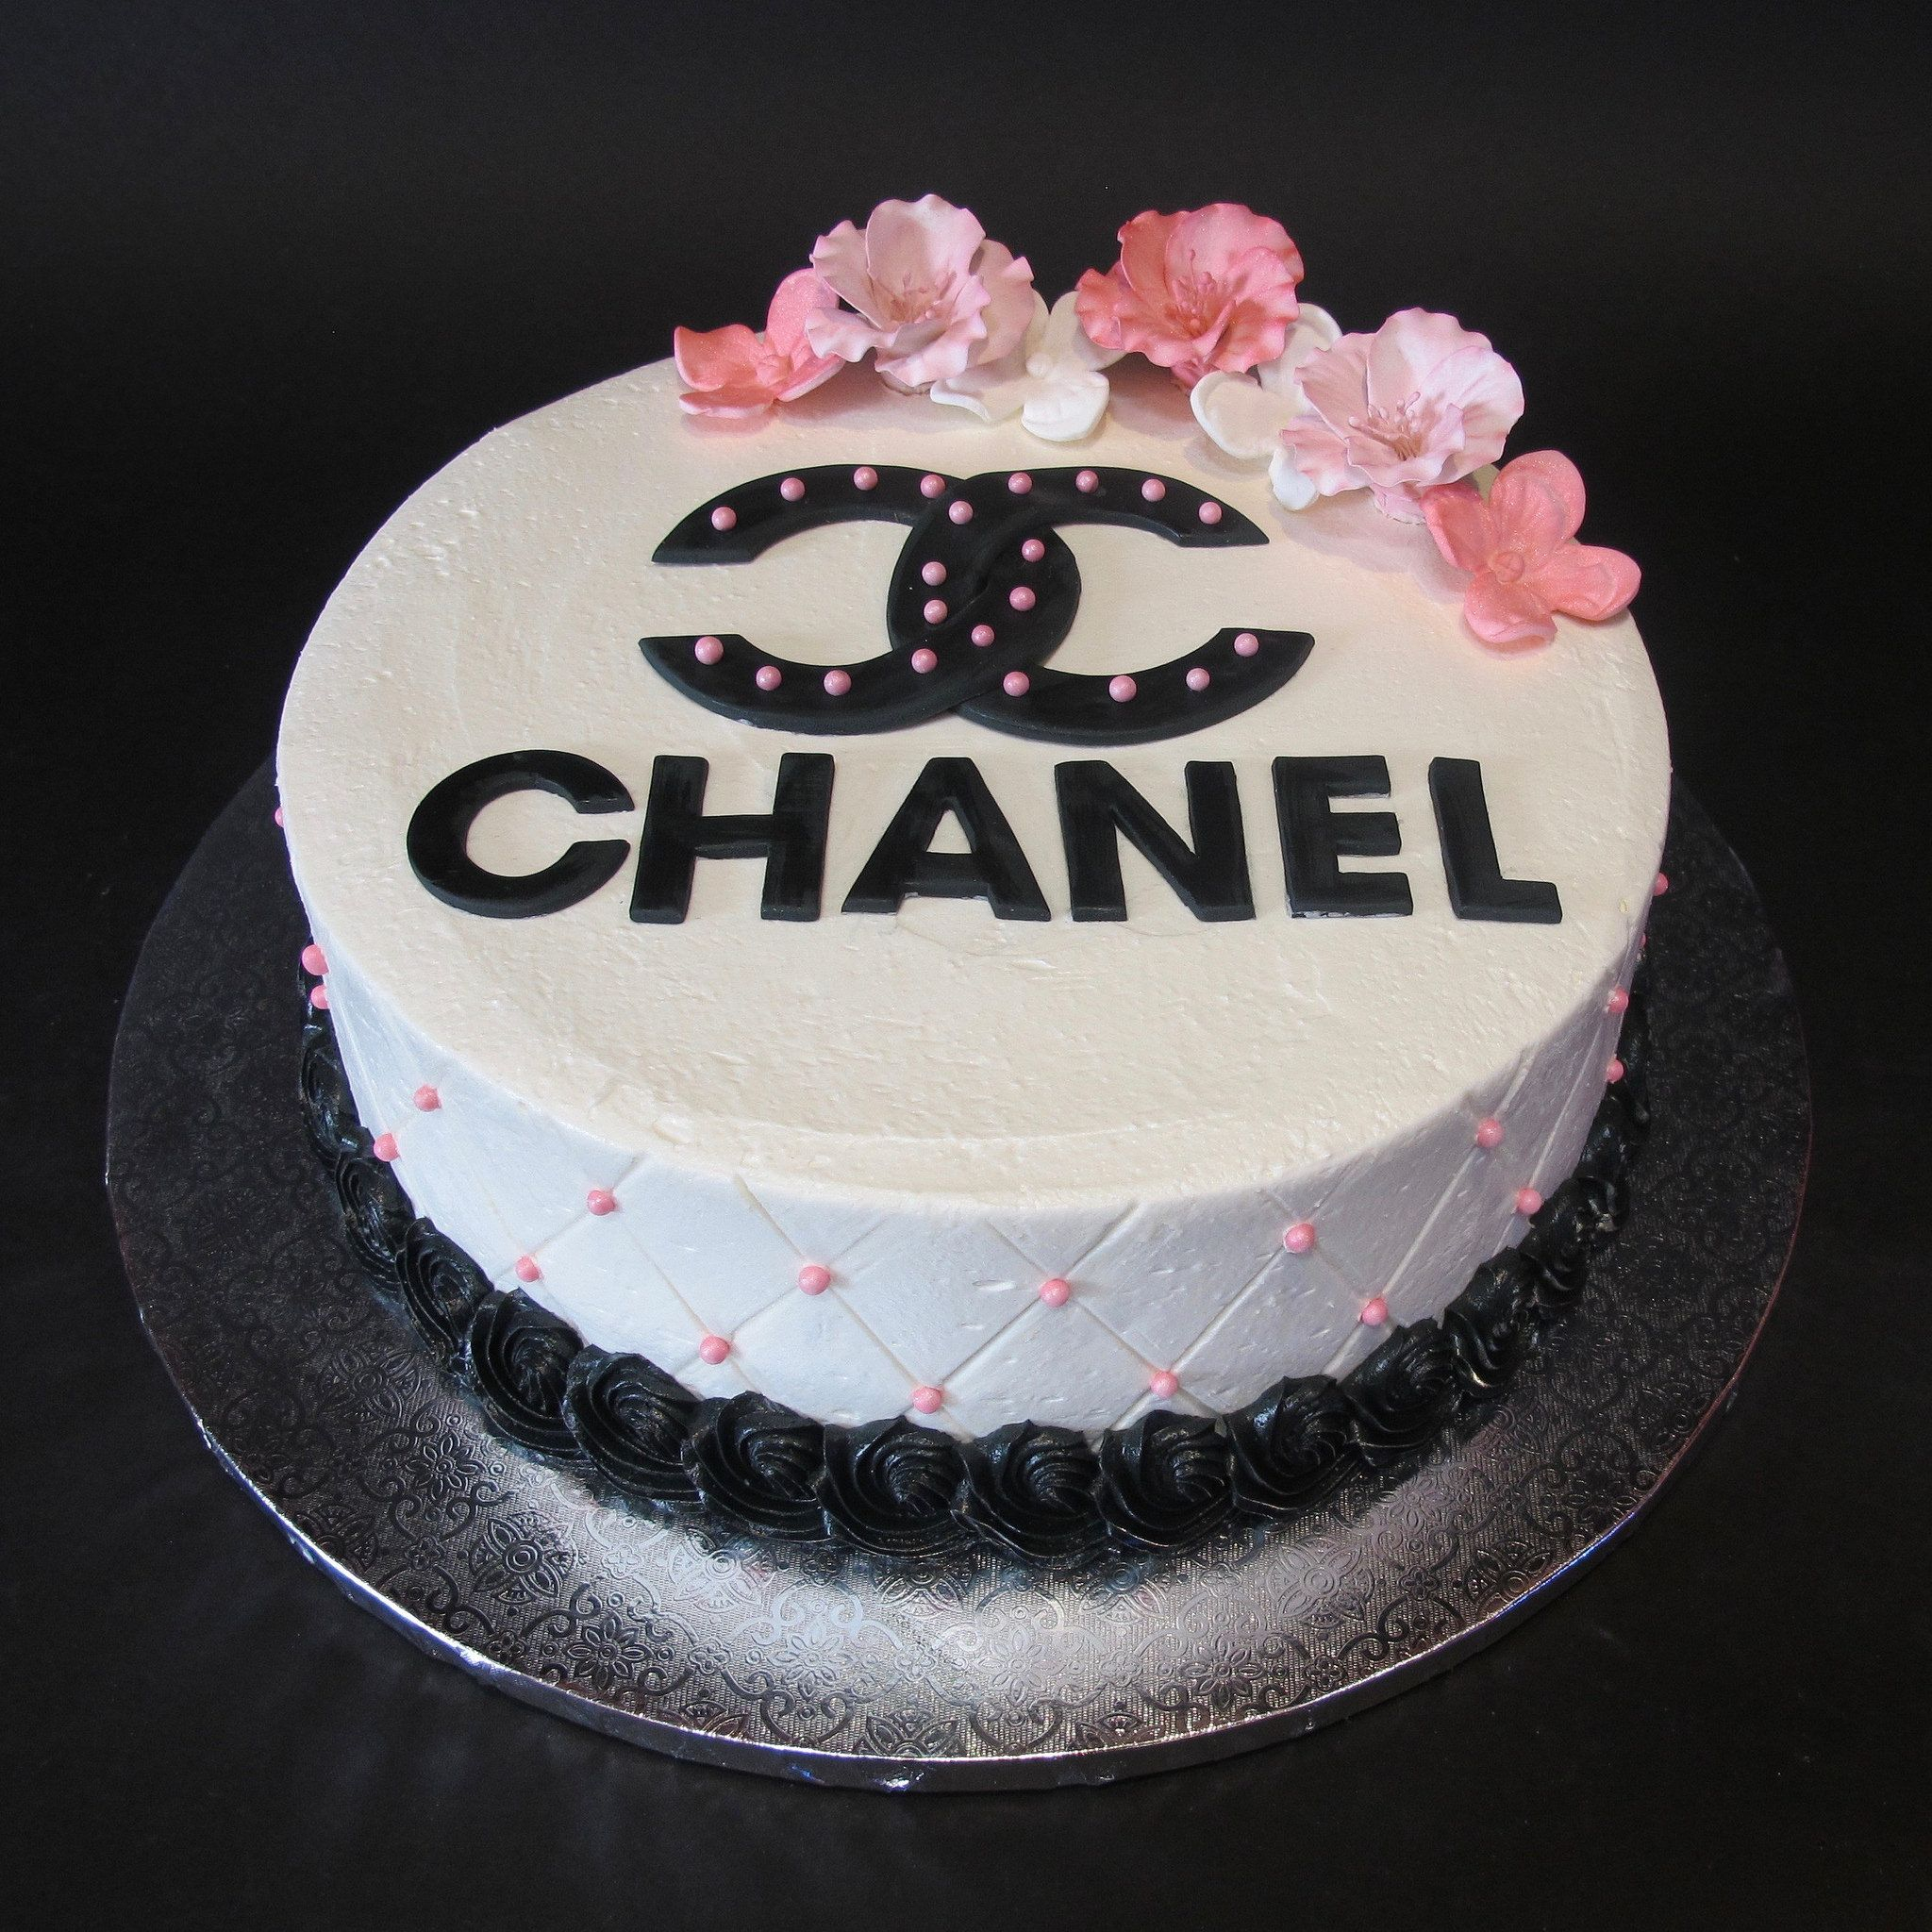 Classy Birthday Cakes Heres A Classy Birthday Cake For A Fashionista Chanel Logo With